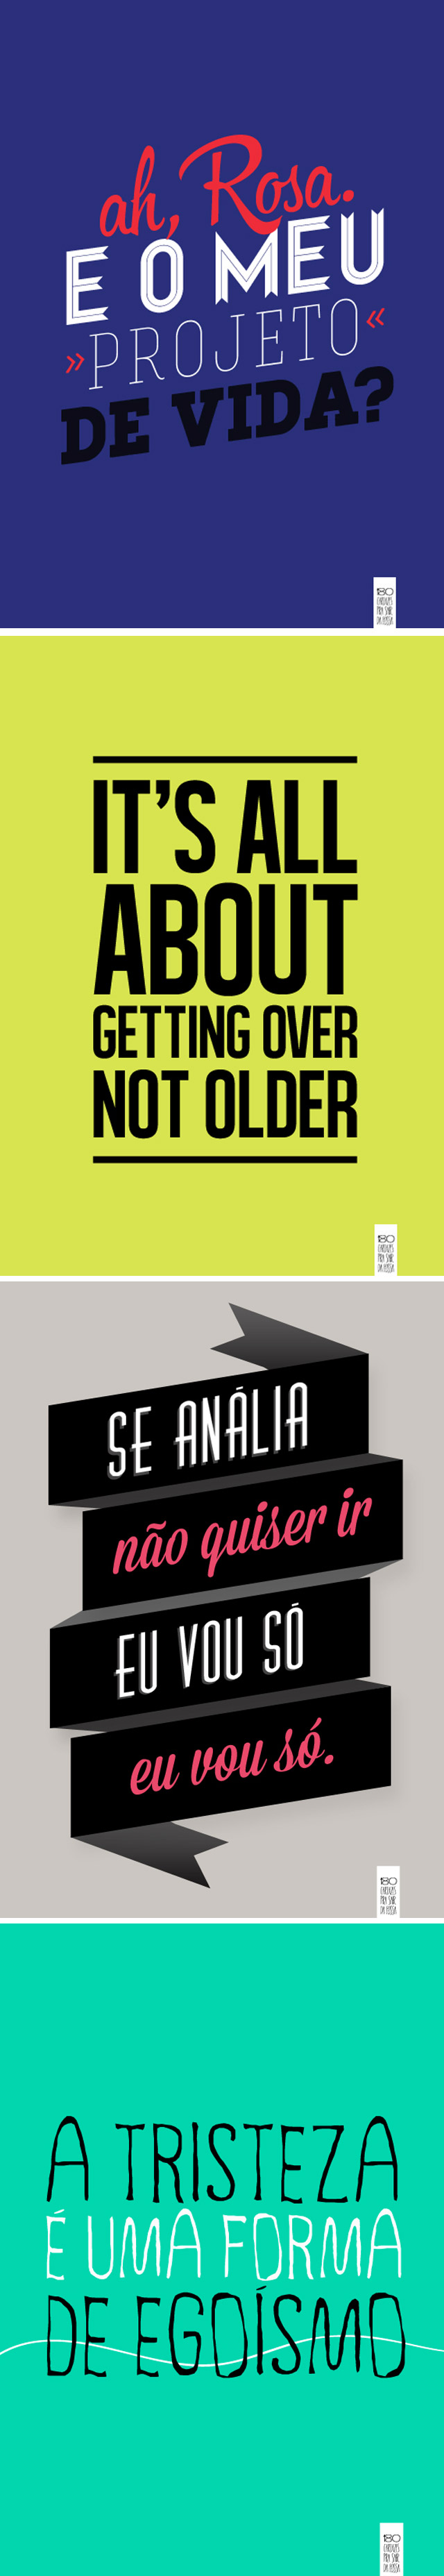 It's all about getting over, not older